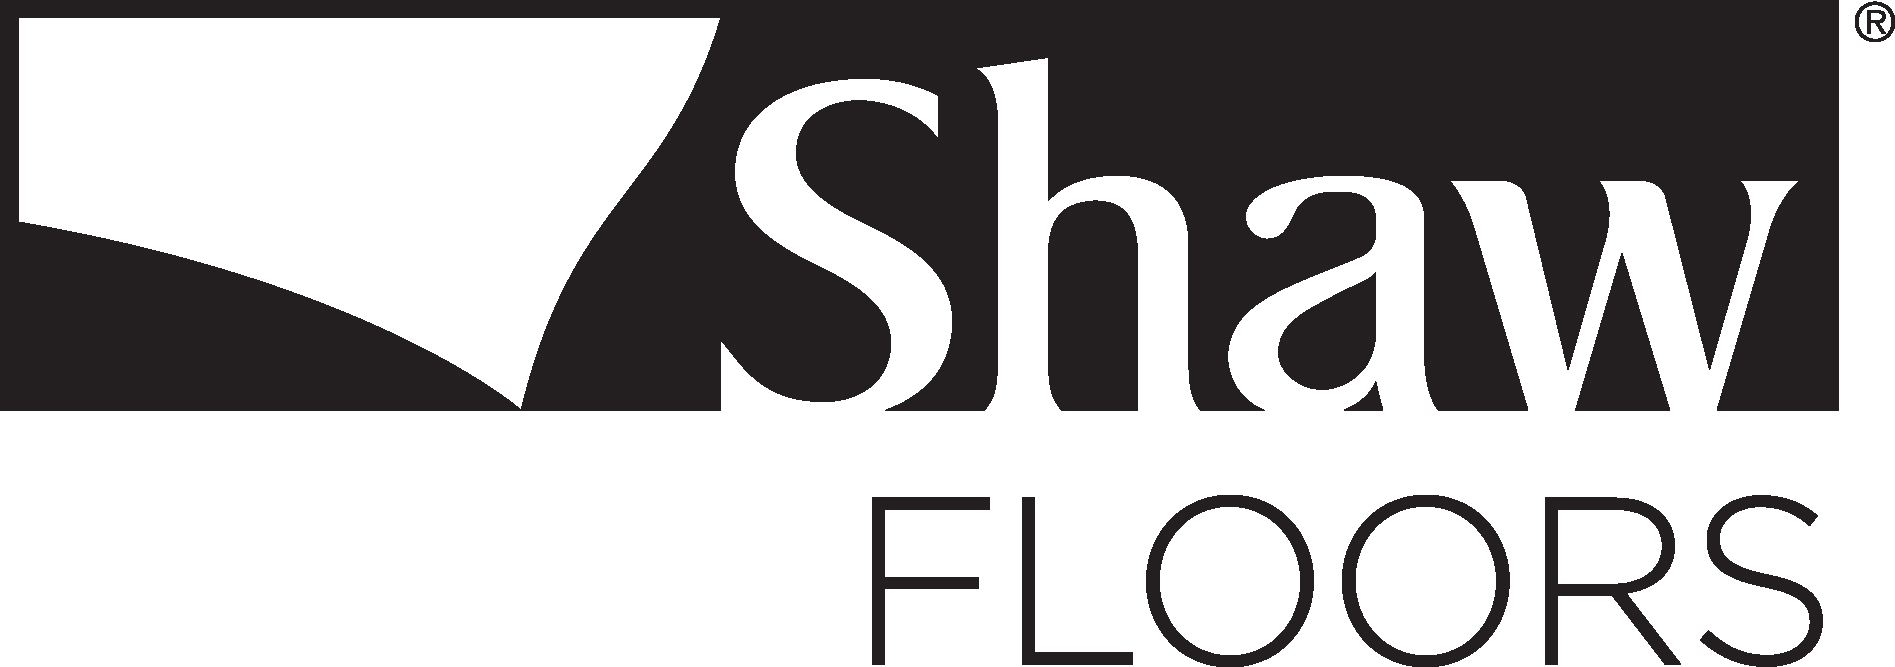 Shaw-Floors-Logo_k.jpg